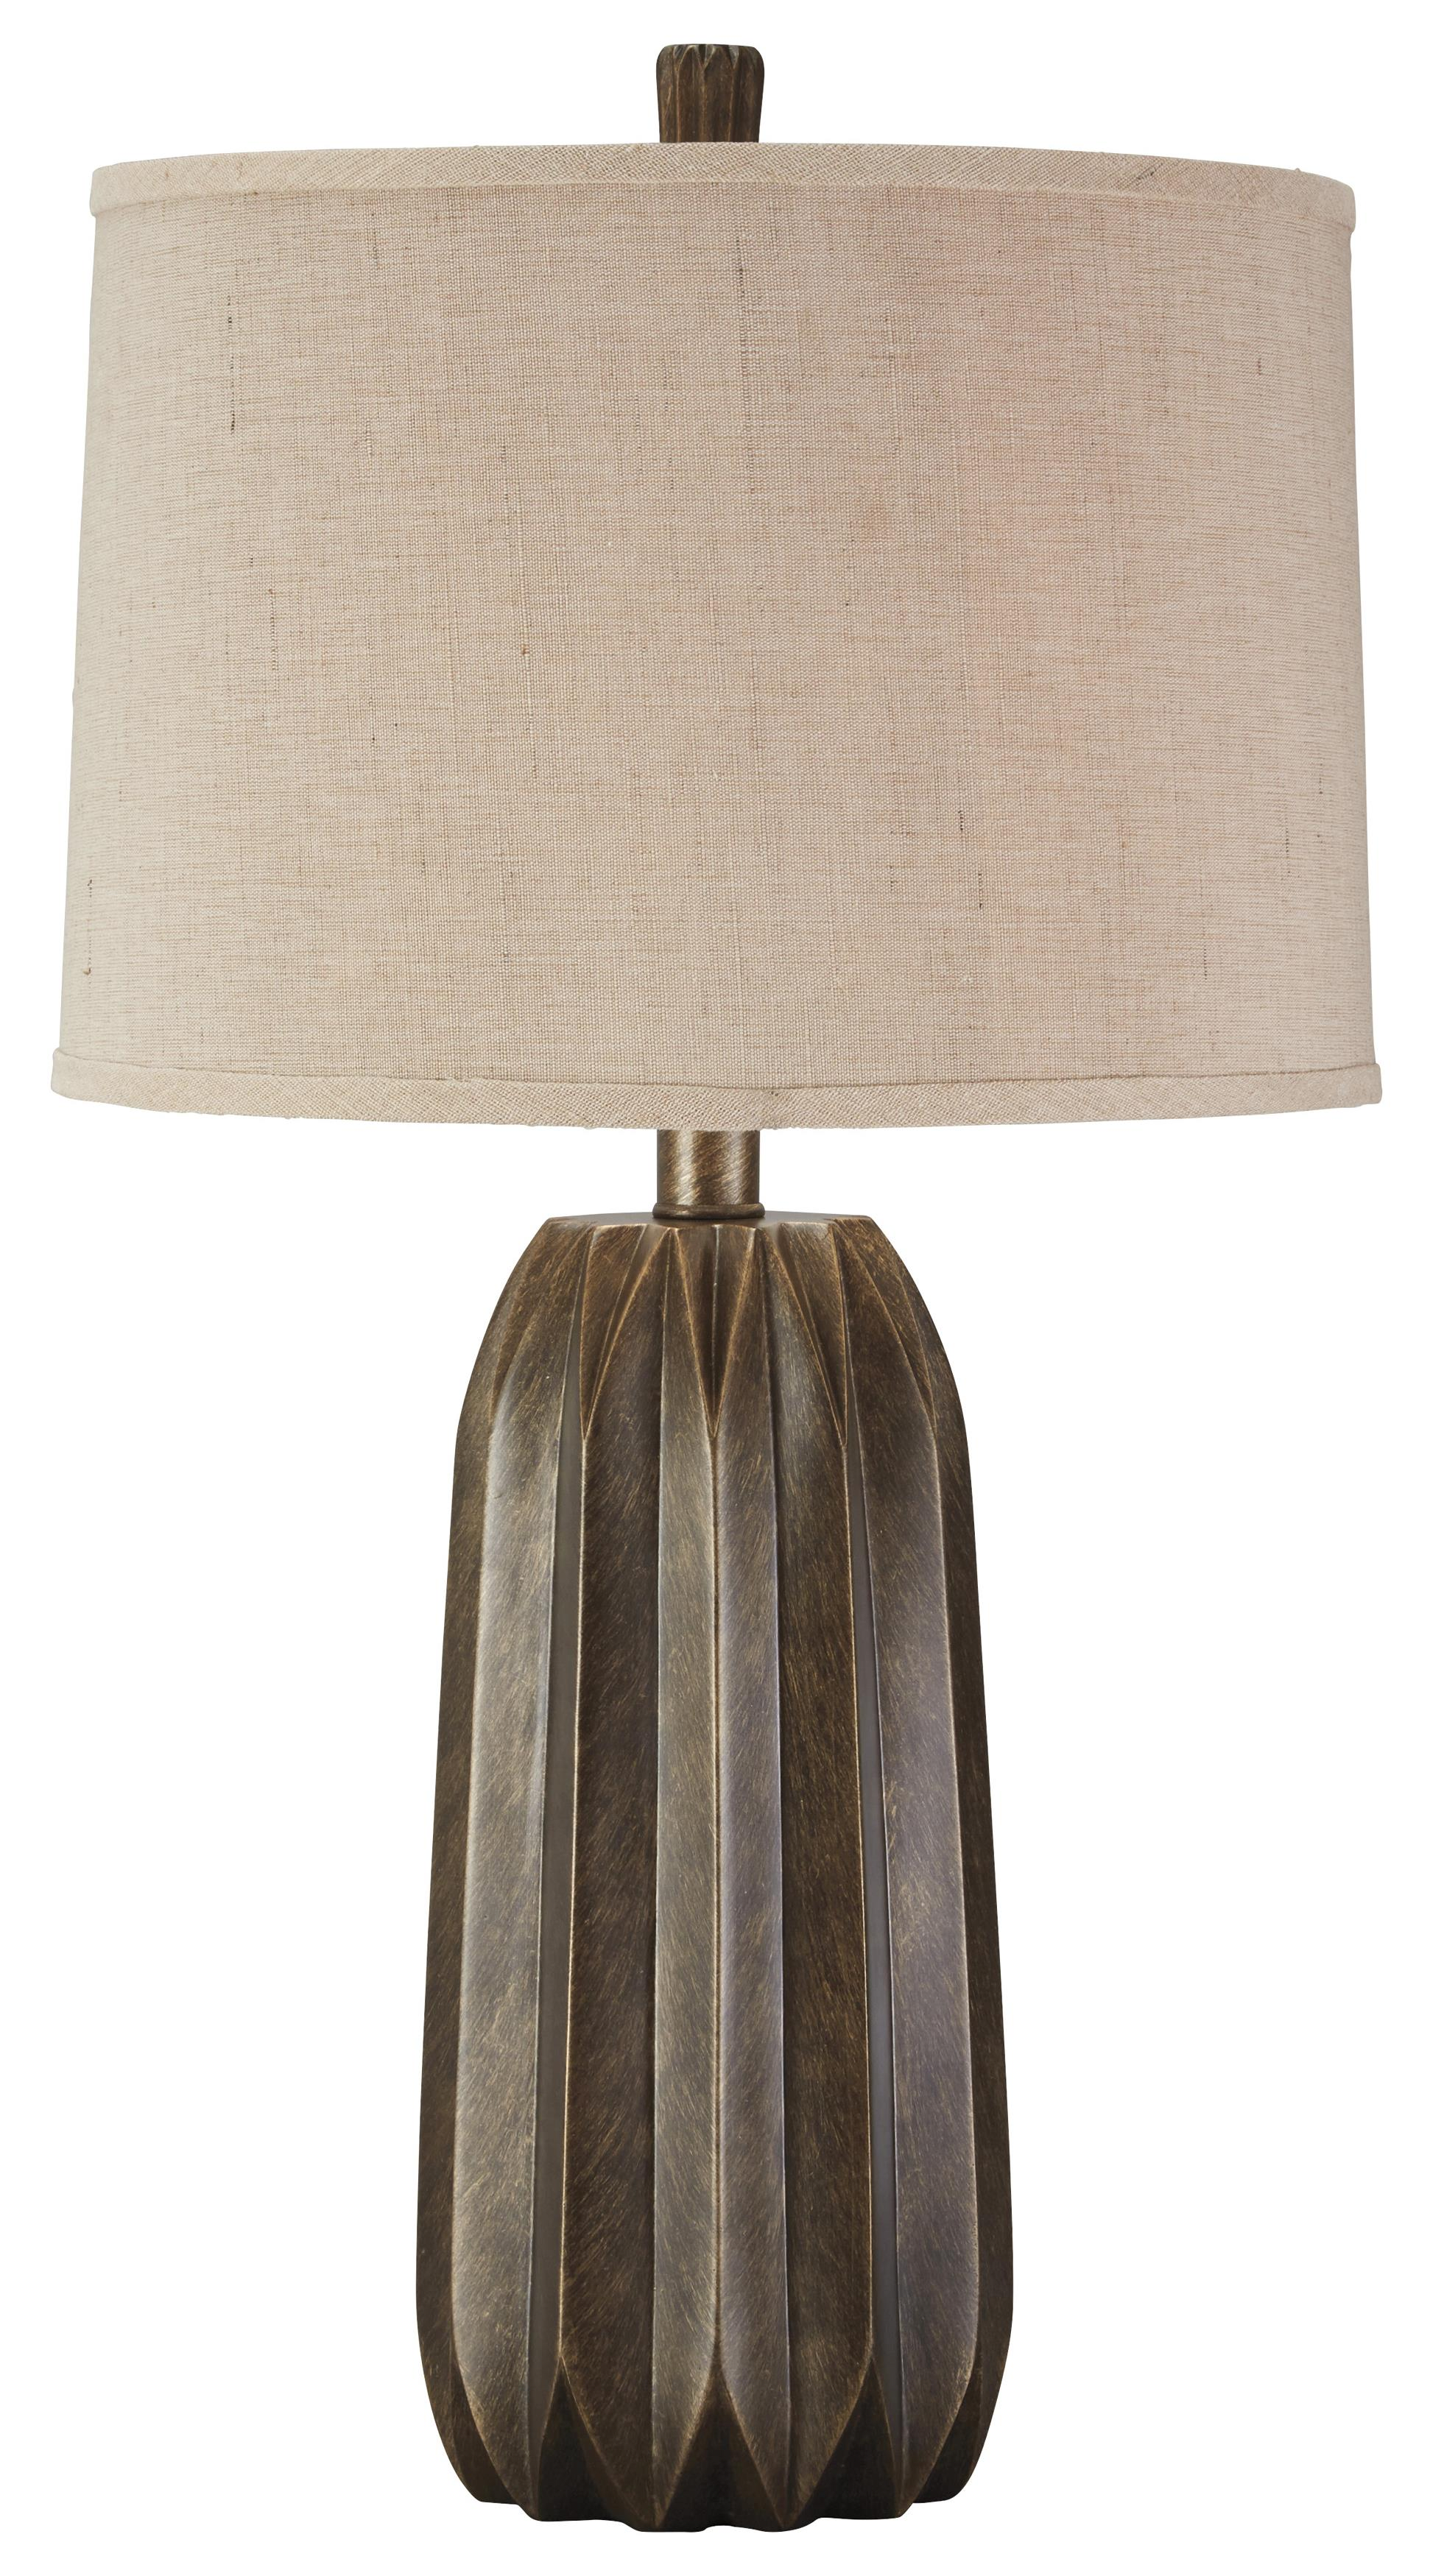 Signature Design by Ashley Lamps - Contemporary Khalil Poly Table Lamp - Item Number: L235014